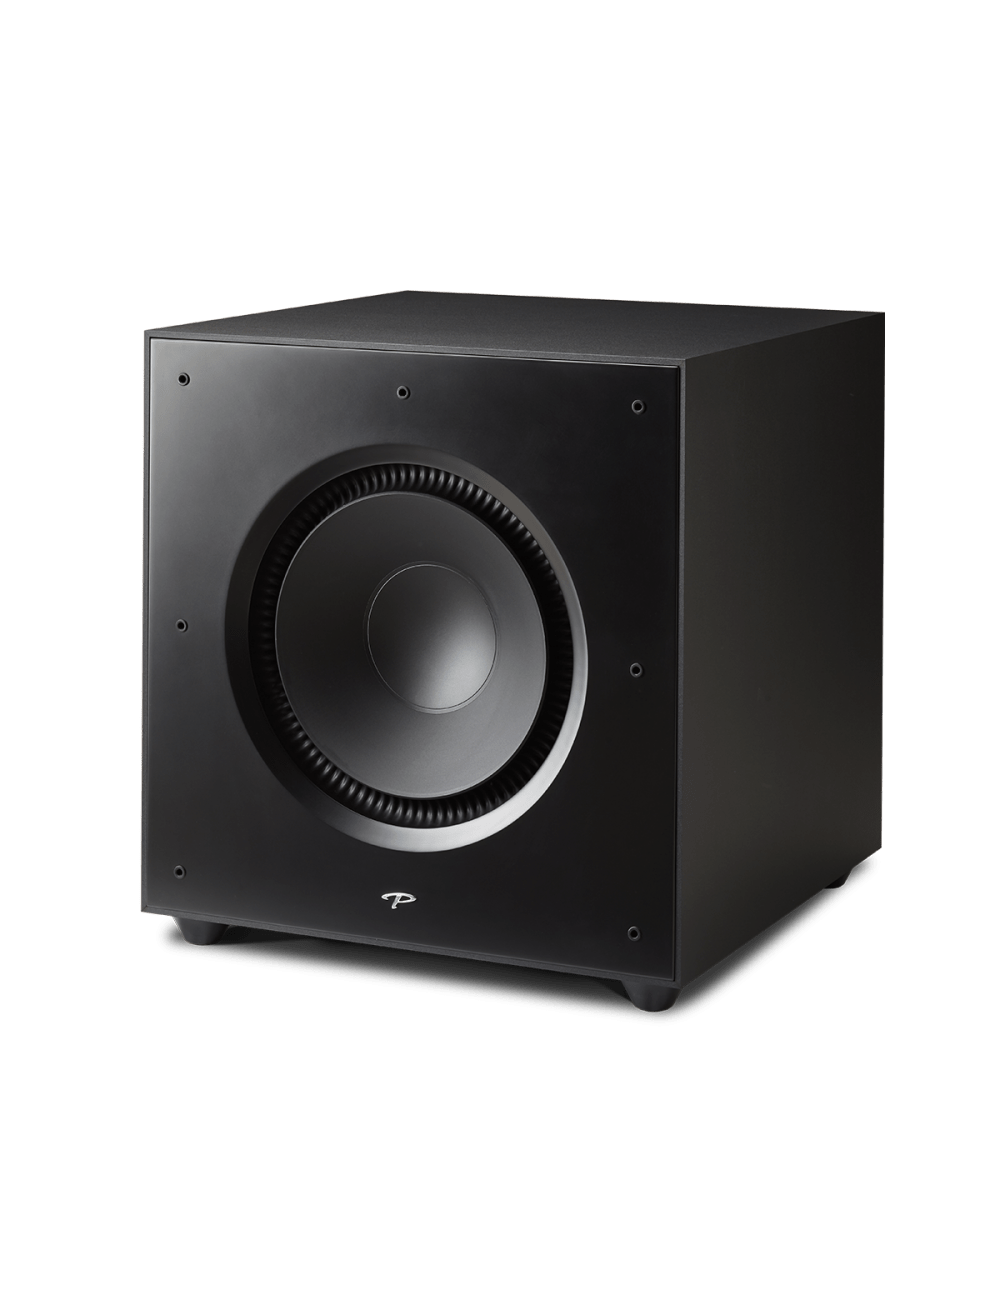 subwoofer amplificato Paradigm Defiance X15, HiFi e Home Theater, finitura satin black